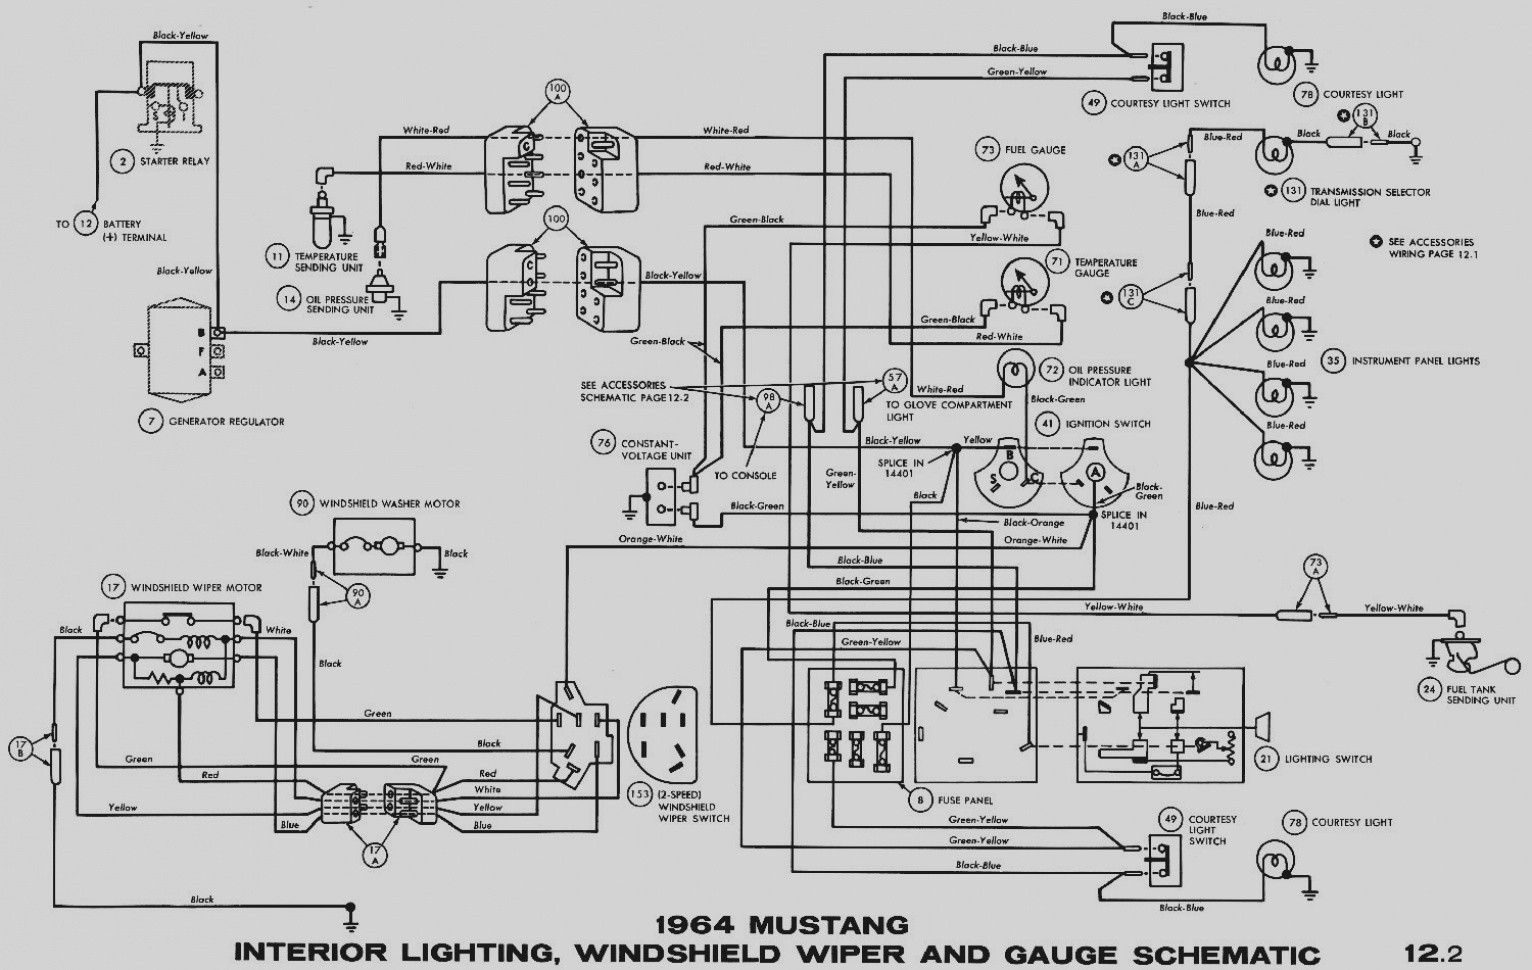 1984 mustang wiring diagram smart wiring diagrams u2022 rh krakencraft co 1970 Ford Torino Wiring-Diagram 1970 Mustang Dash Wiring Diagram